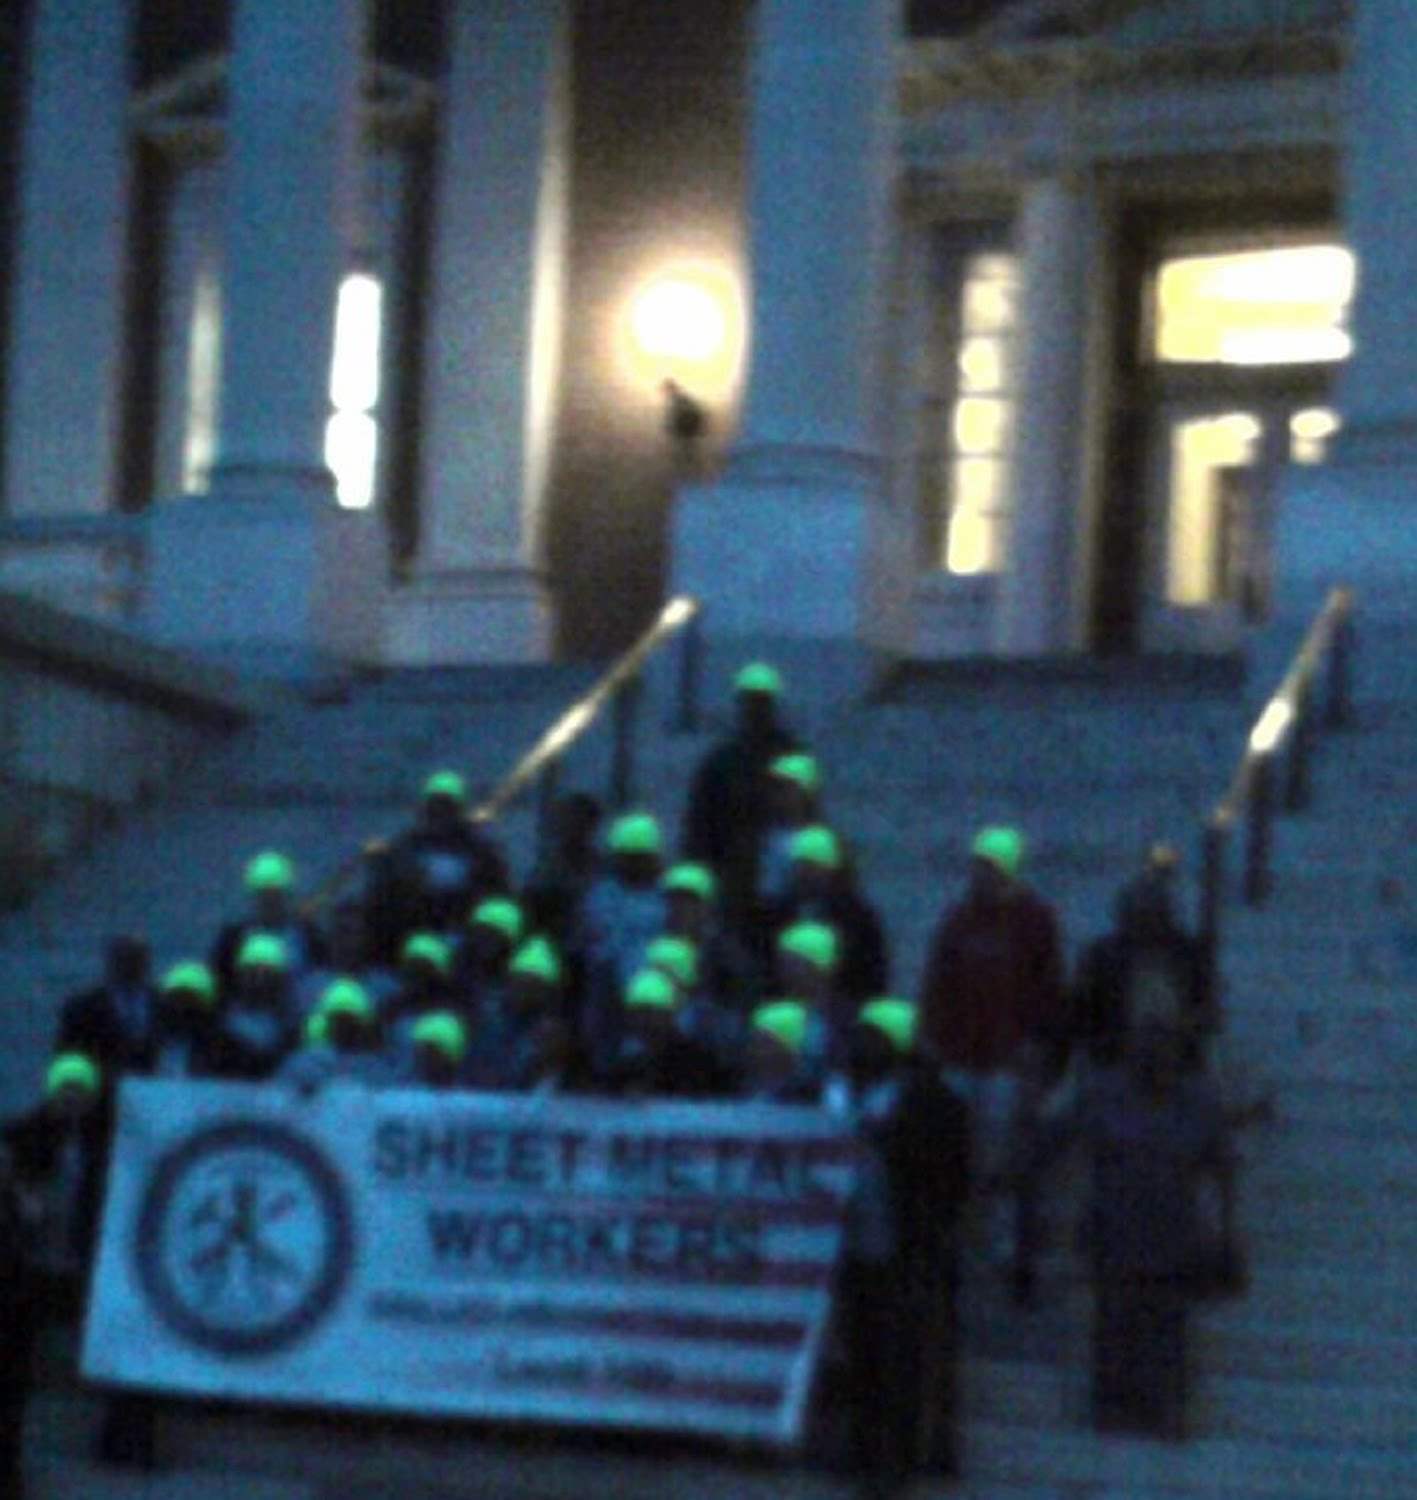 Union rally at lawyers mall on monday hosted an energetic crowd of